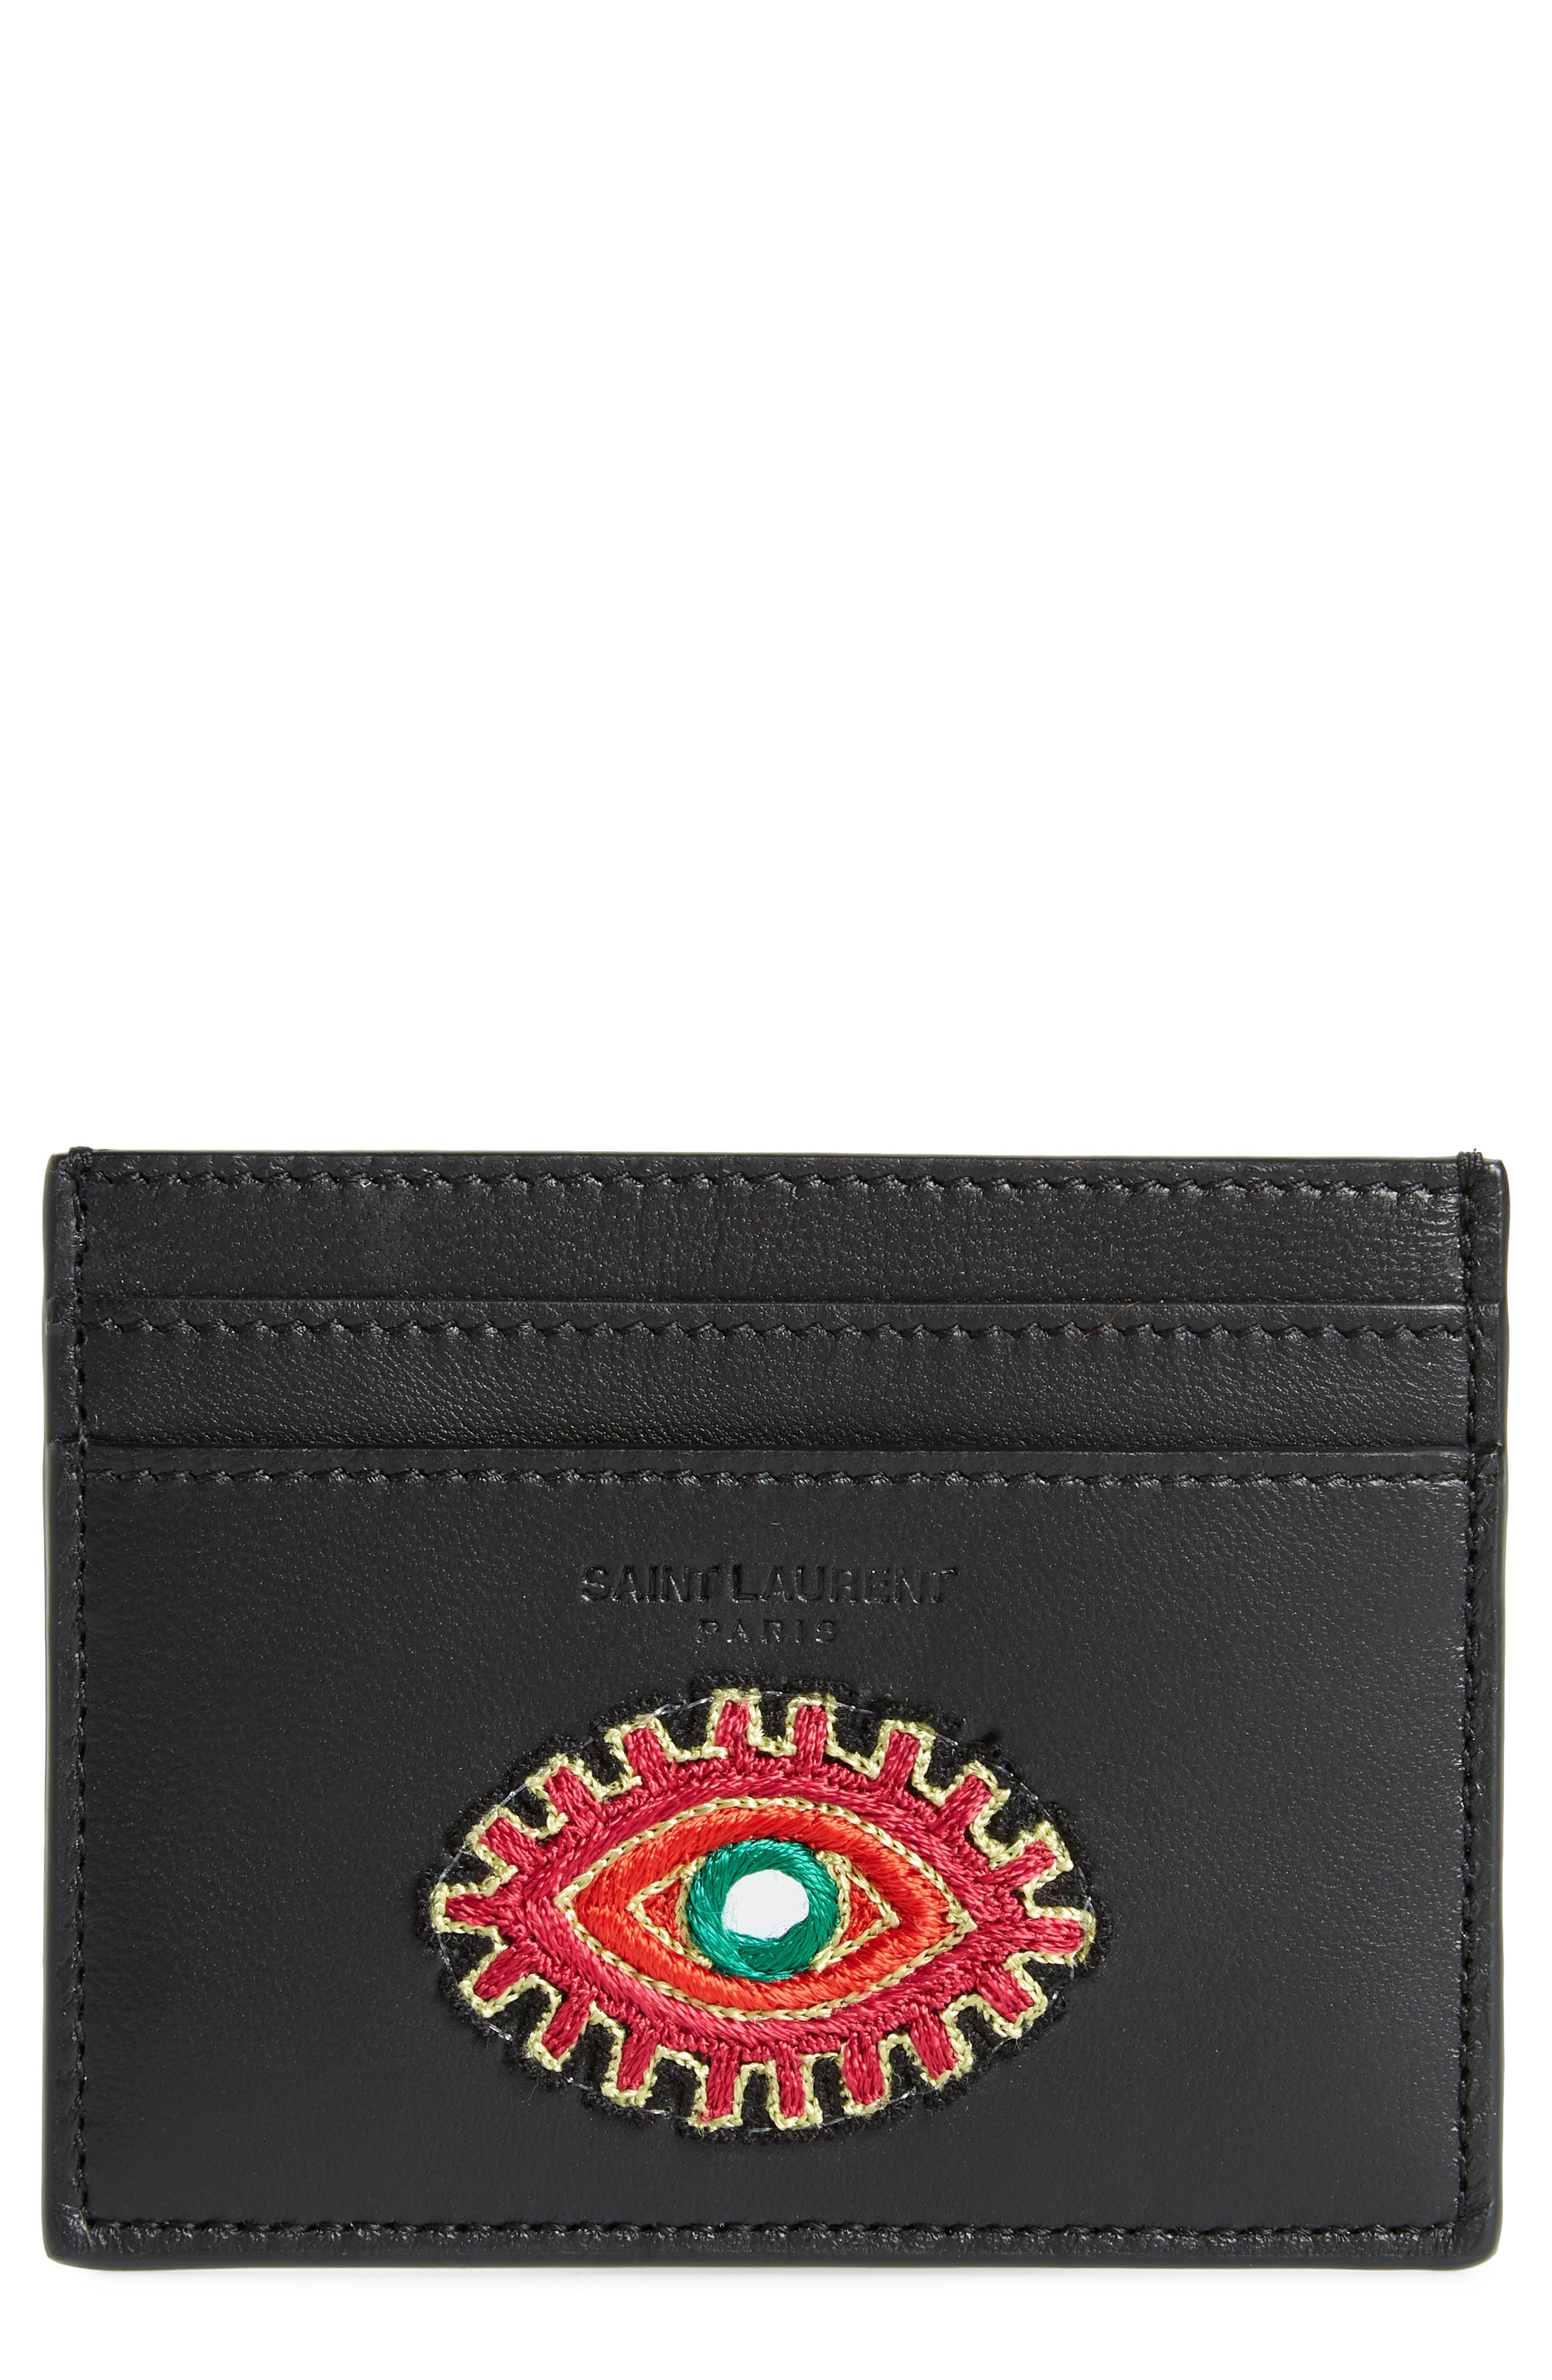 Embroidered Patch Leather Card Case,                             Main thumbnail 1, color,                             001